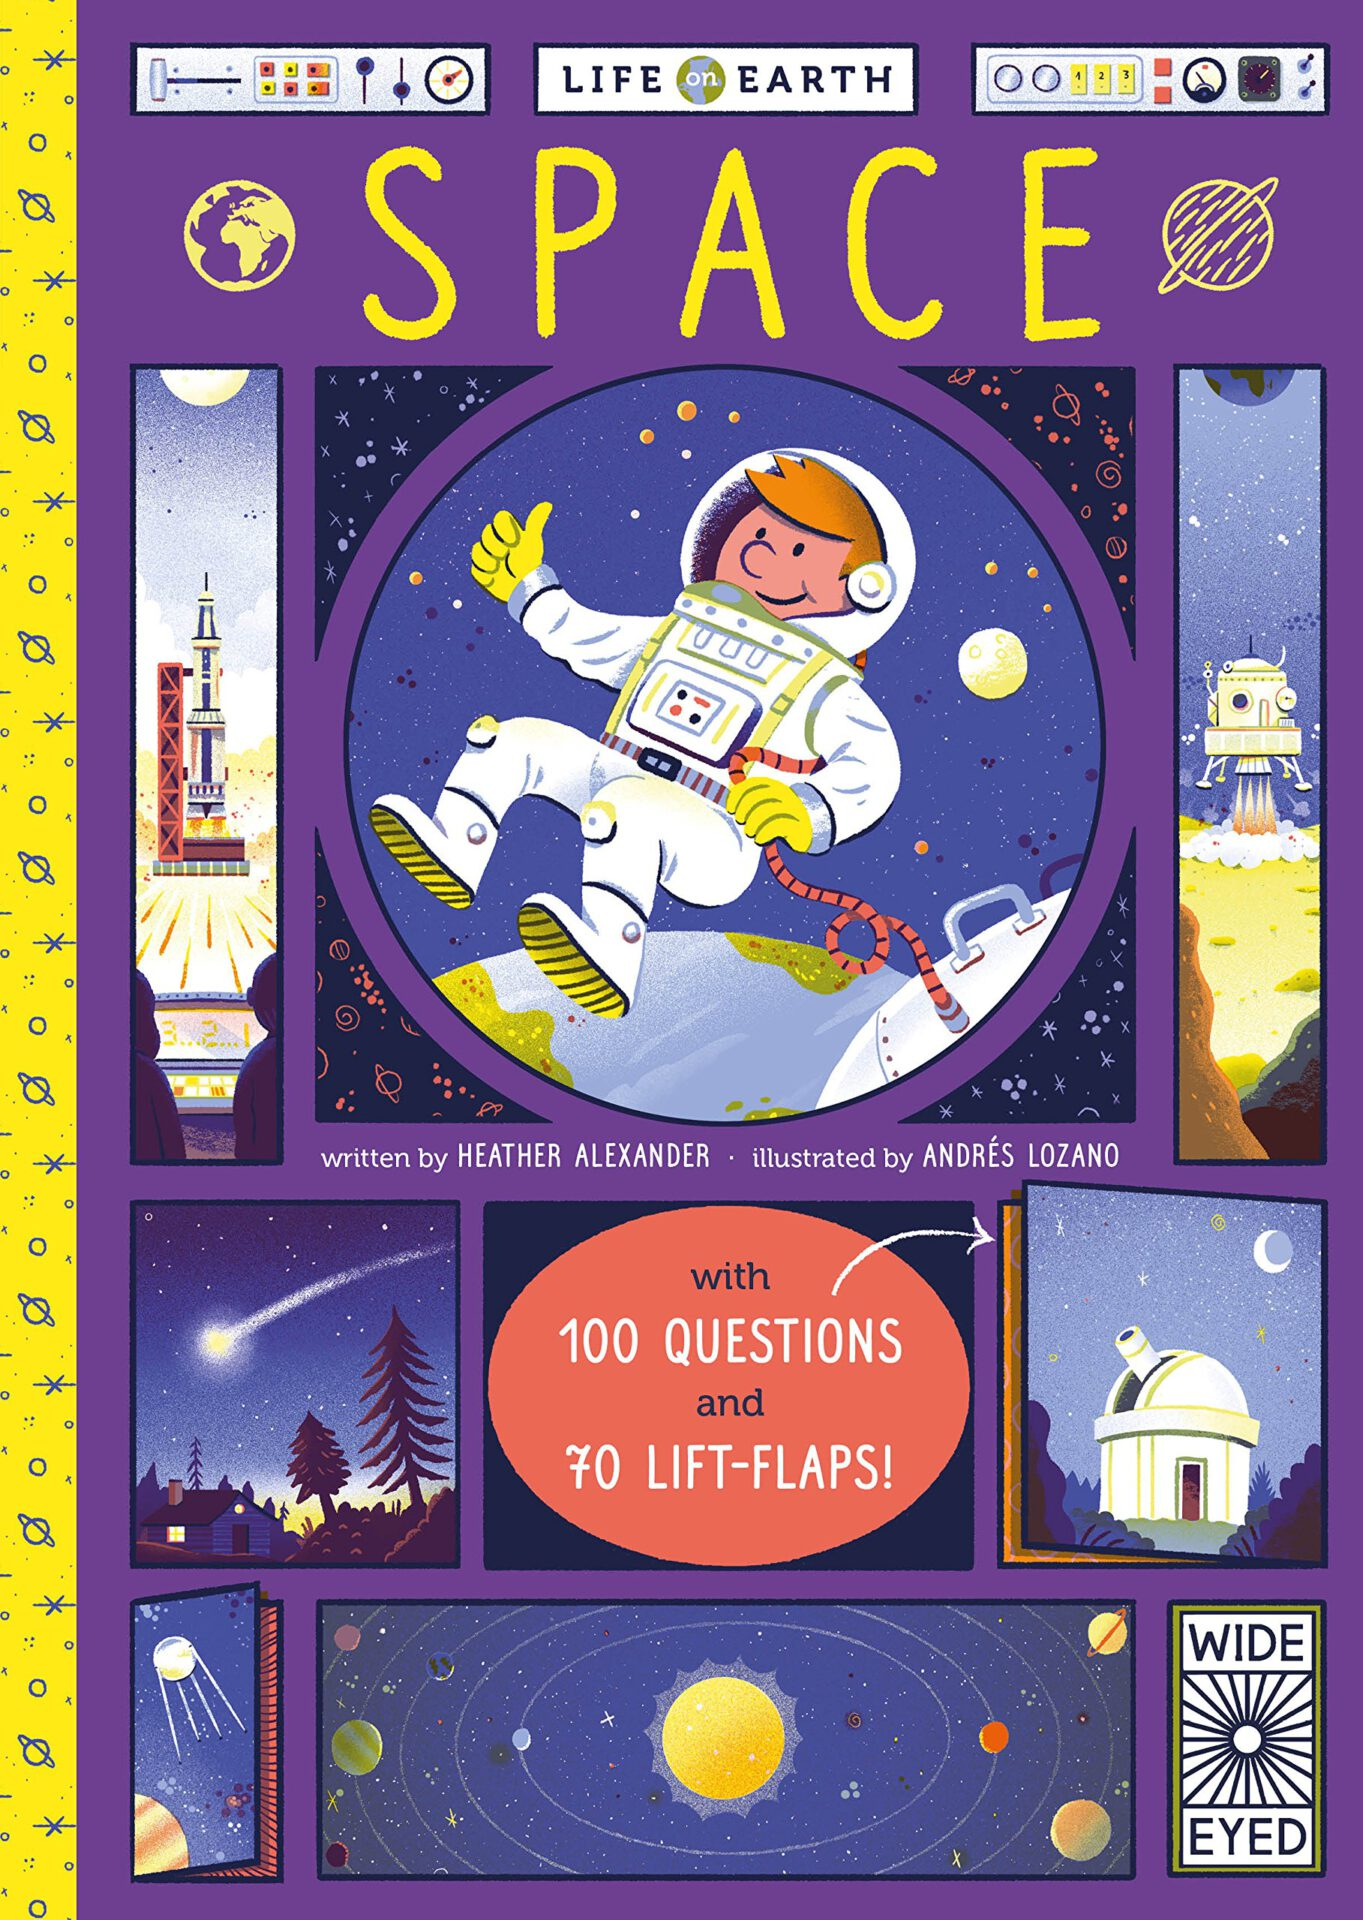 Life on Earth: Space: With 100 Questions and 70 Lift-flaps!